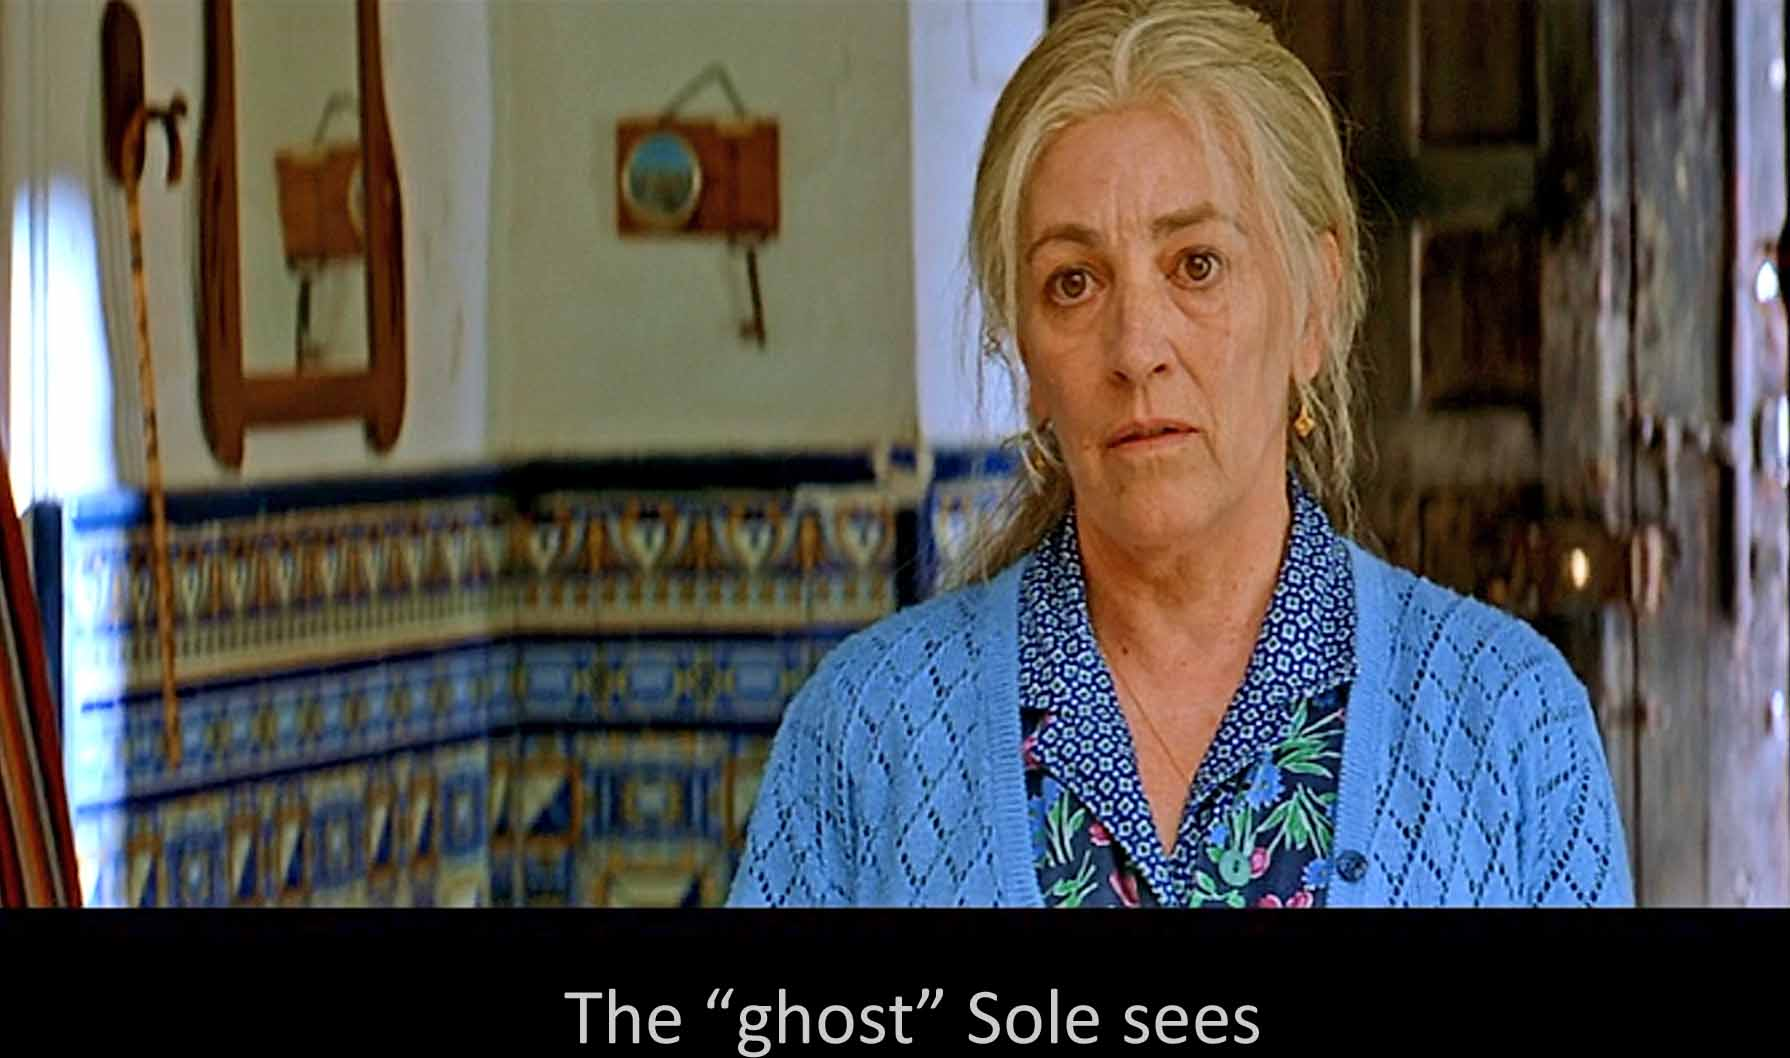 The ghost Sole sees